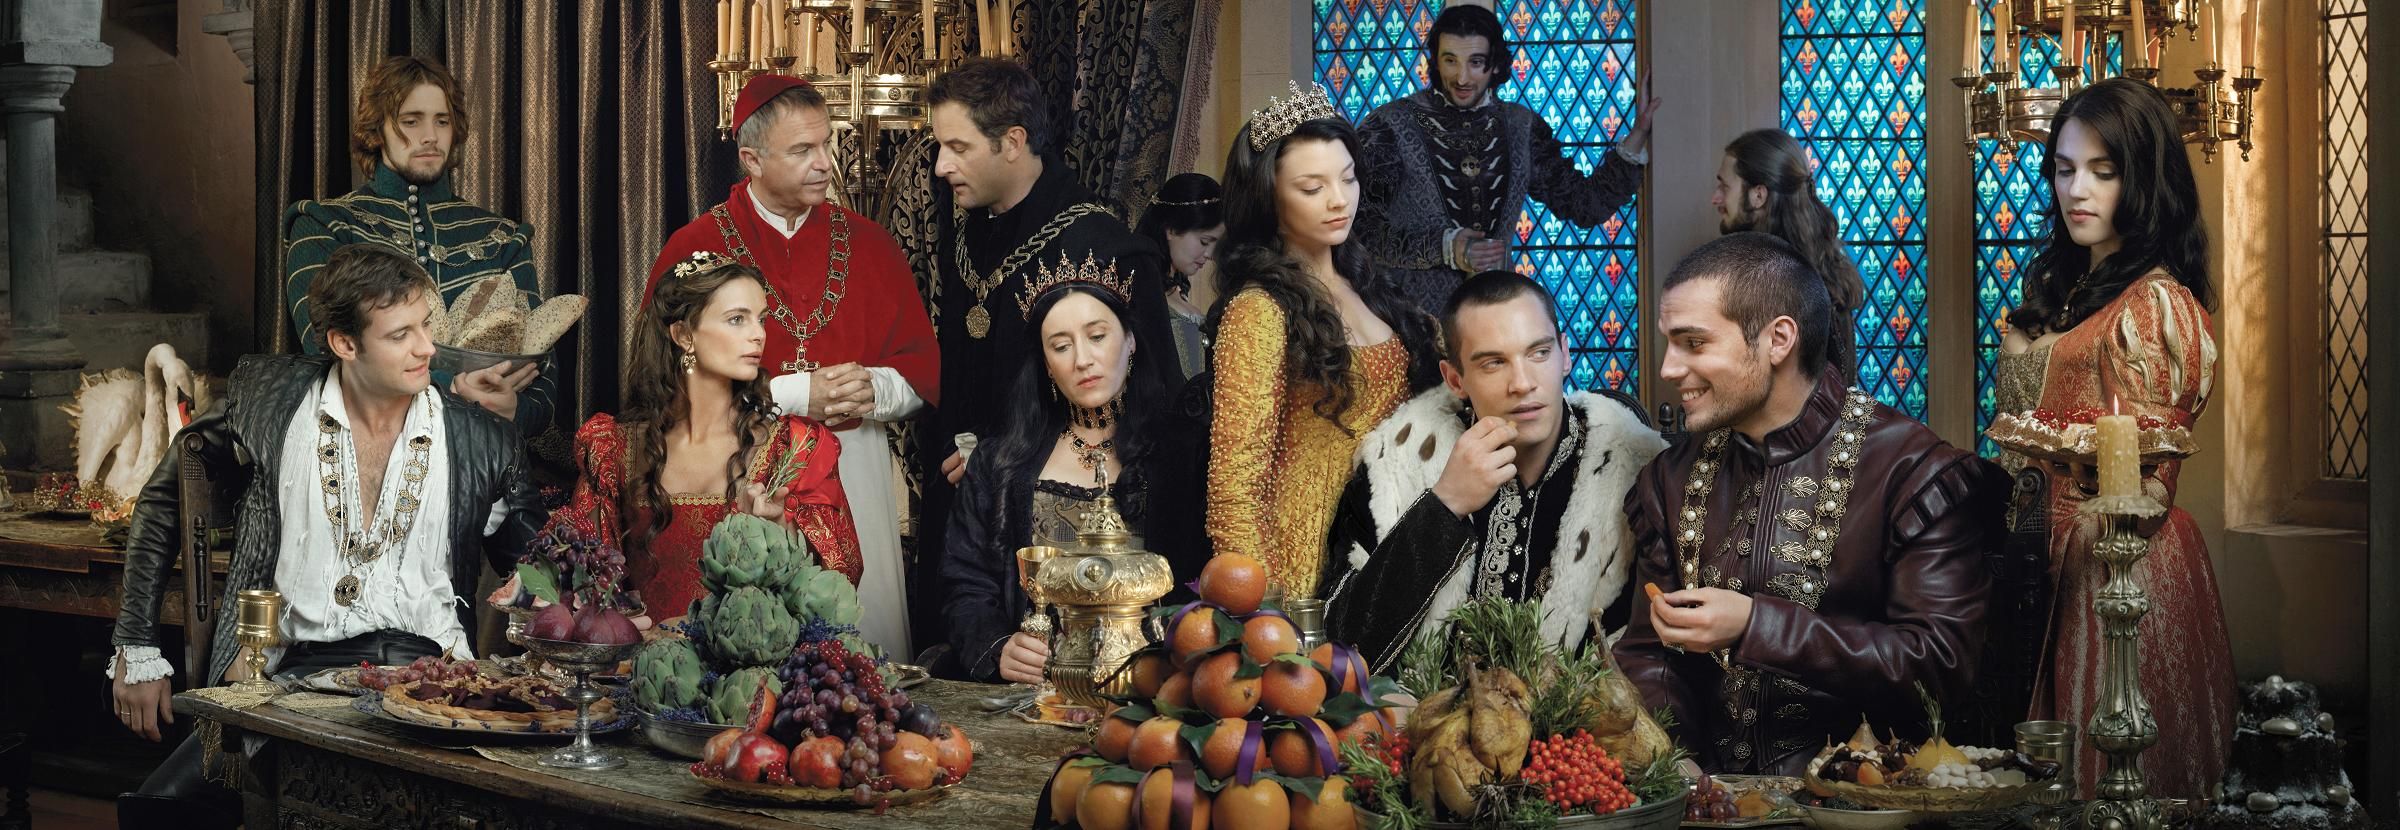 The Tudors-Cast.jpg